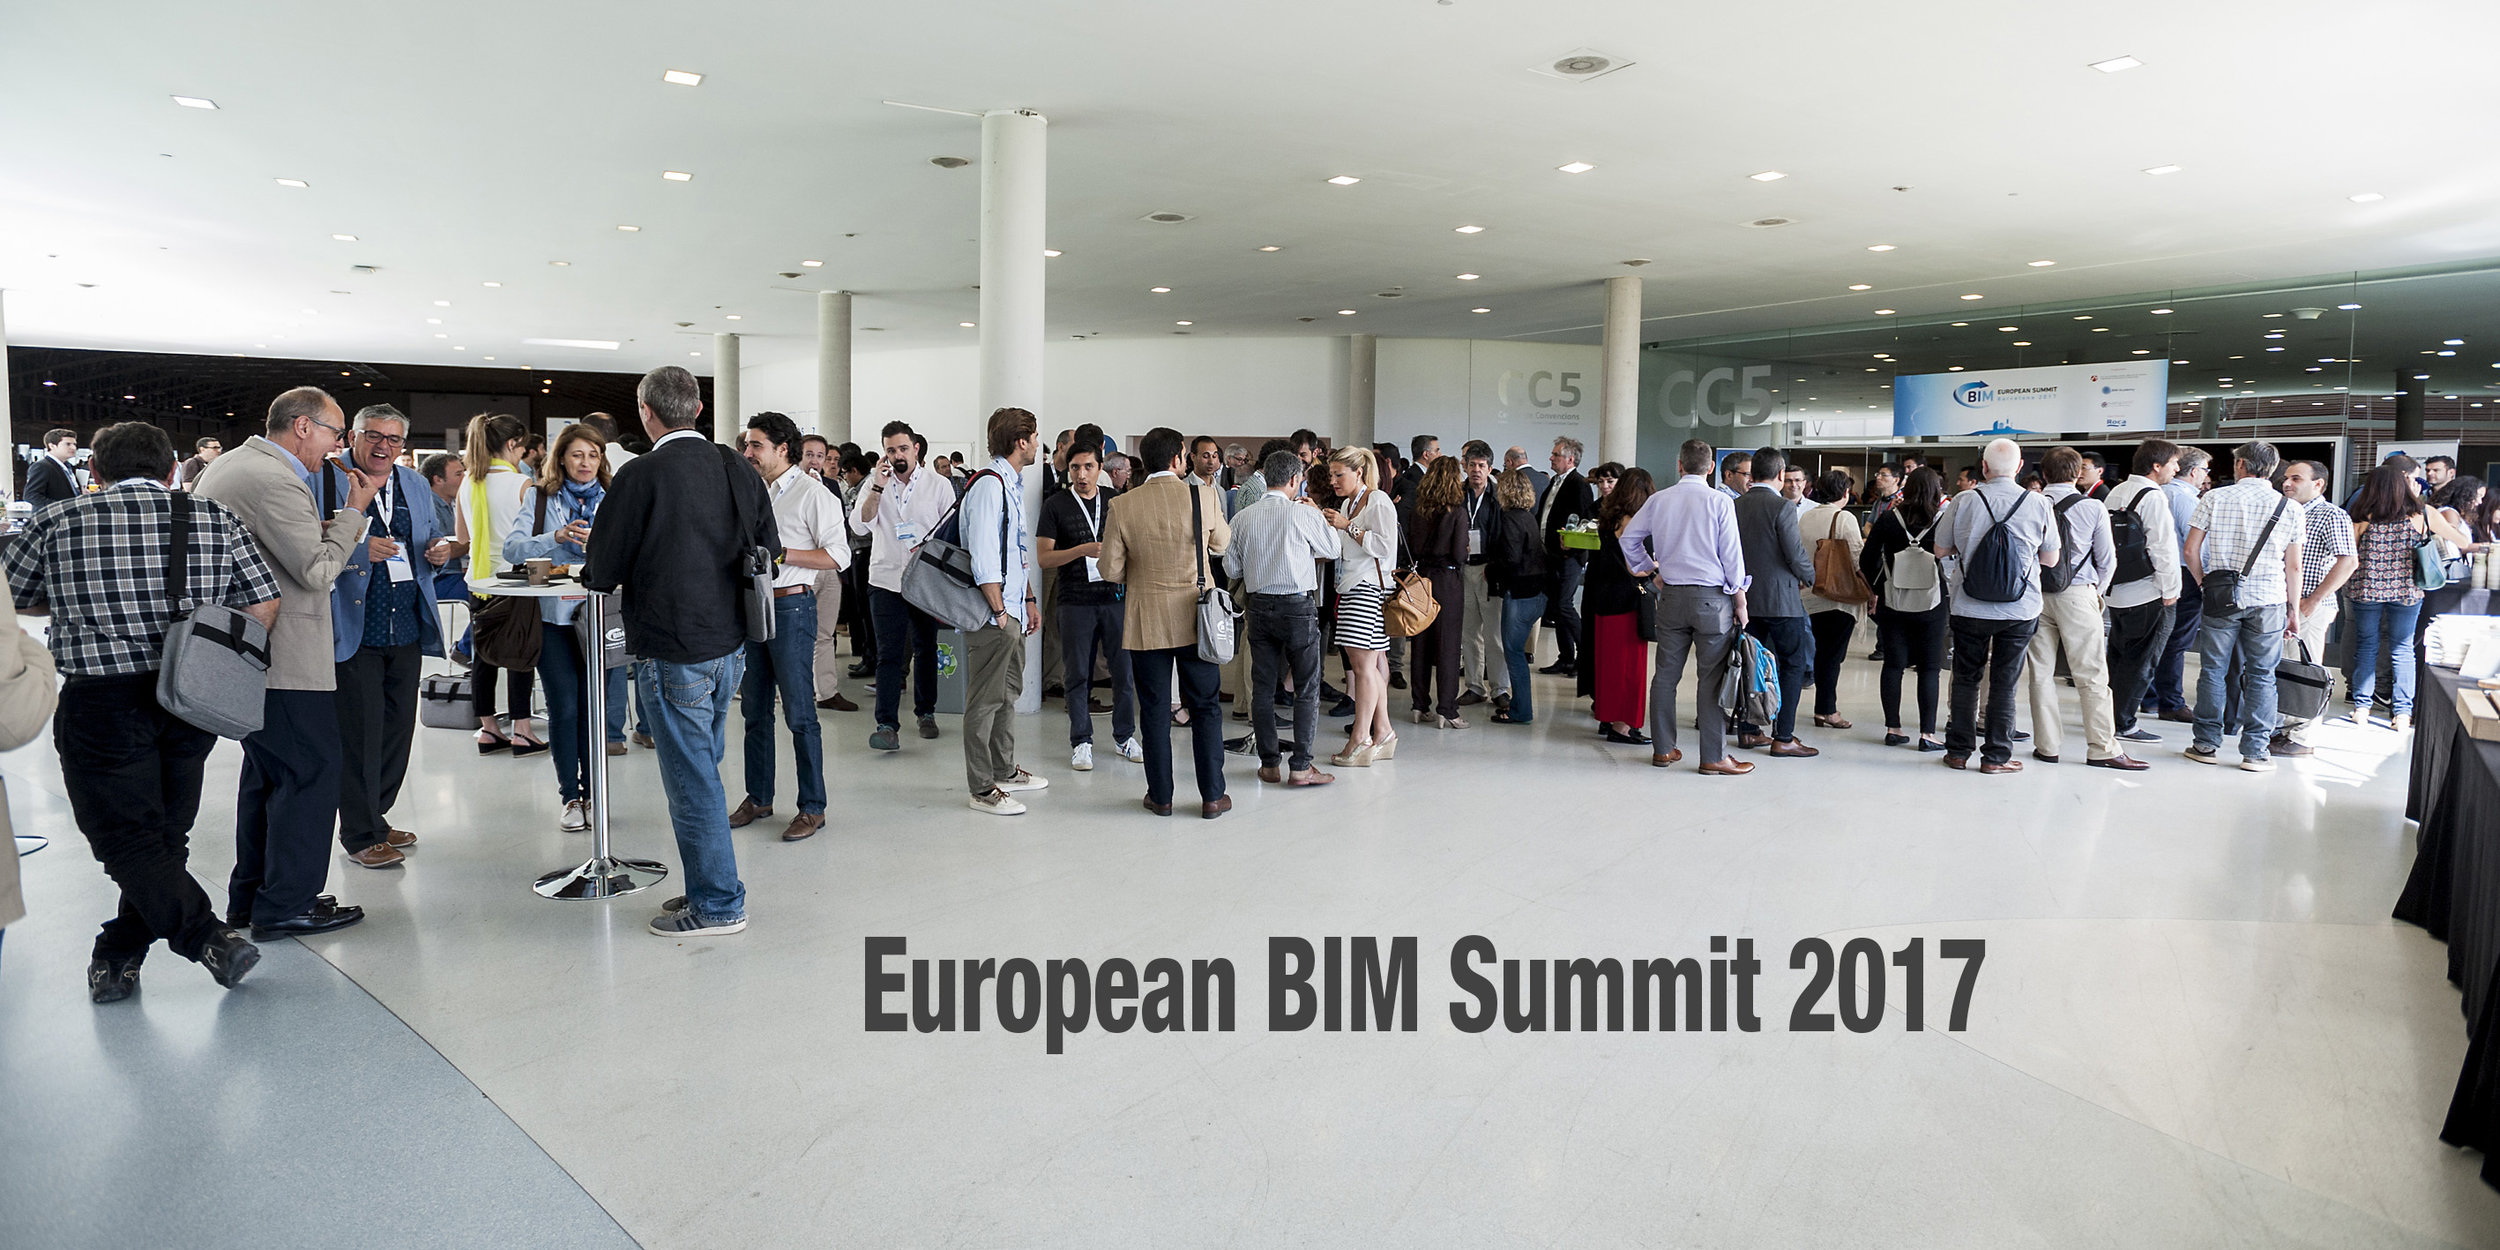 Aflev r digitalt og h st udbyttet rib for European bim summit